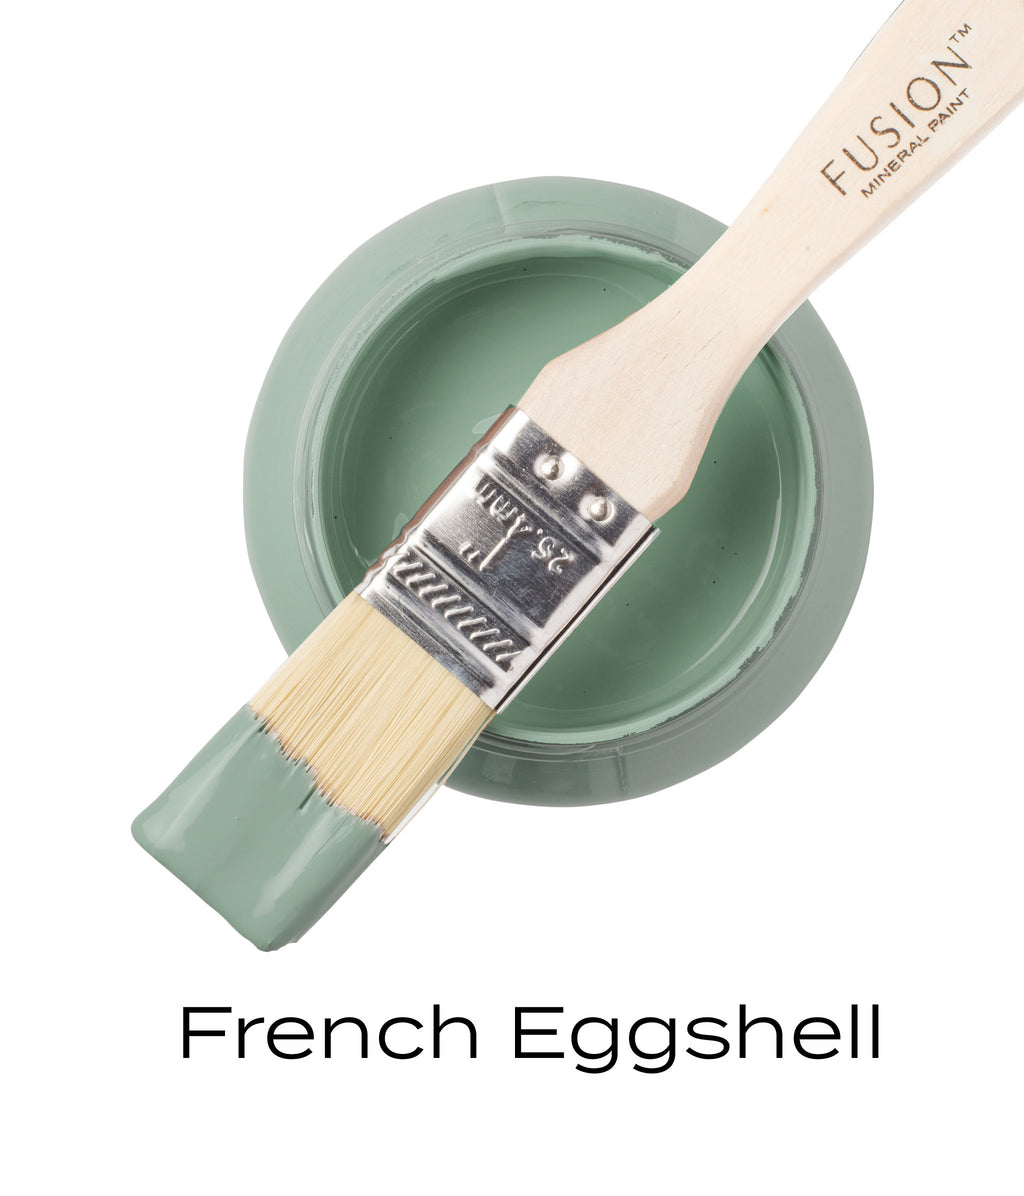 French Eggshell Fusion Mineral Paint Near Me